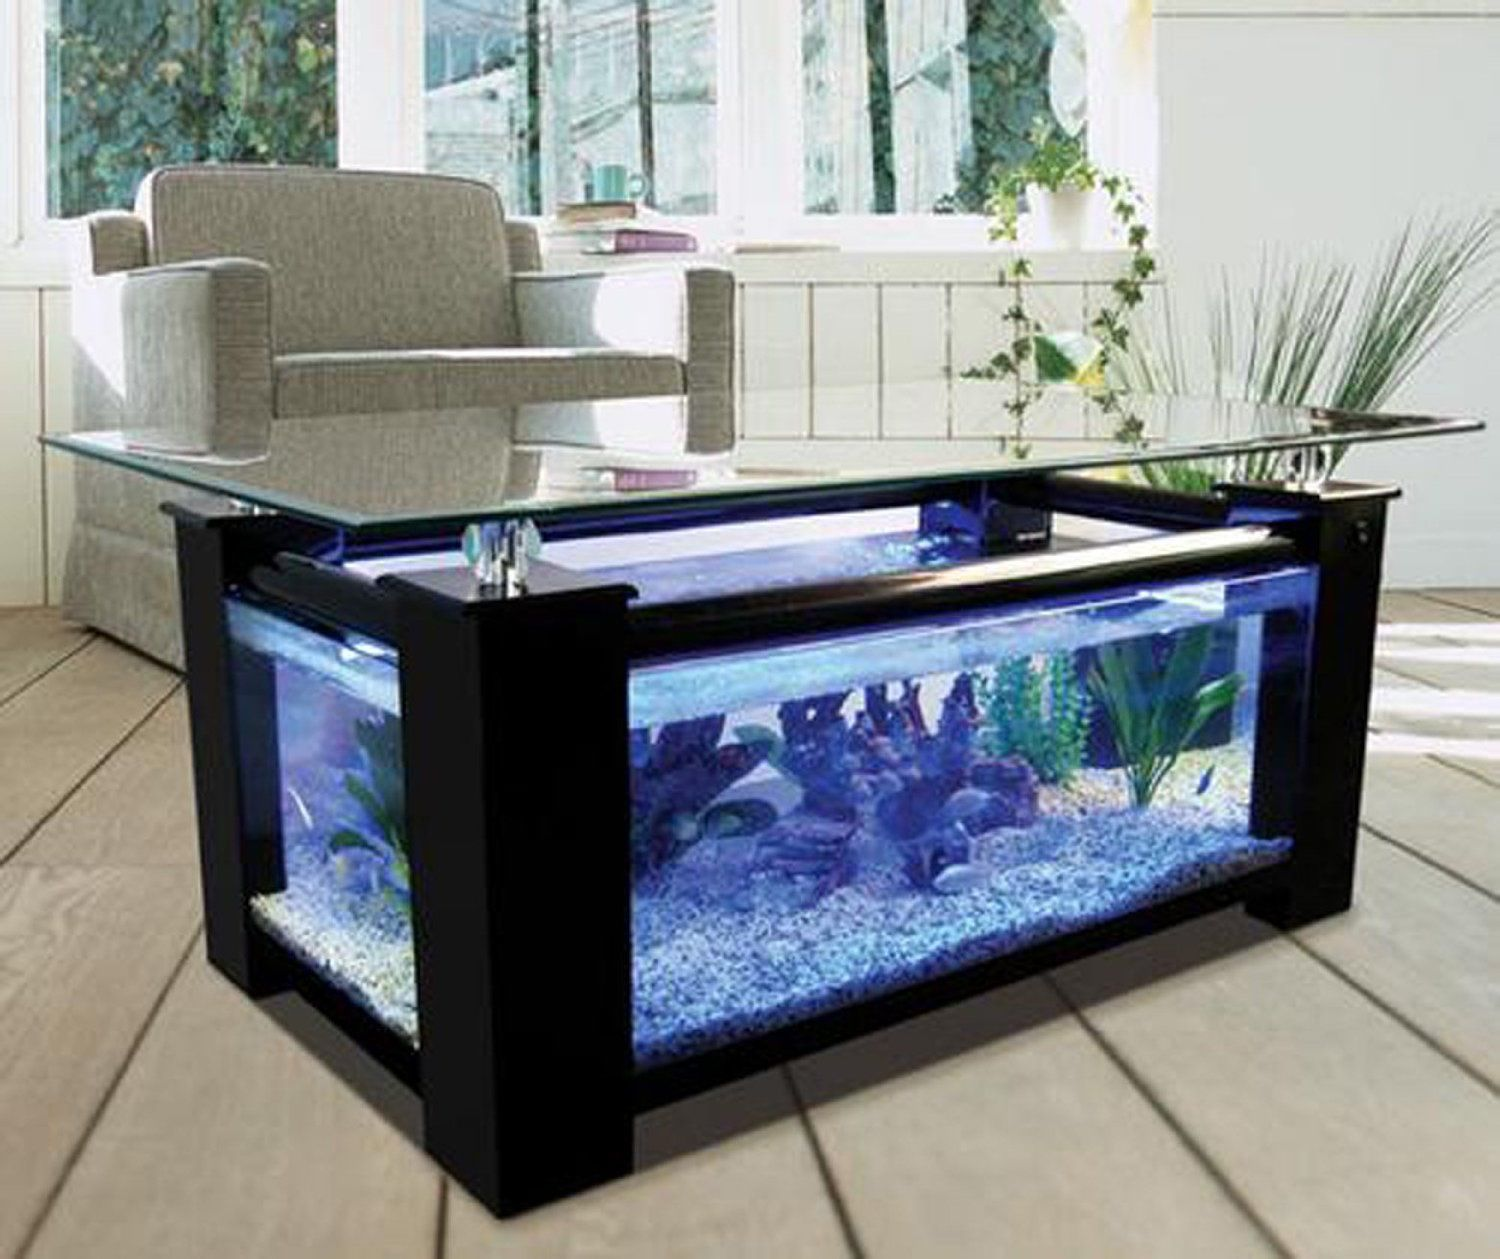 Fish aquarium karachi - Amazon Com 36gl Rectangle Coffee Table Aquarium Completely Fish Ready With Hidden Filter